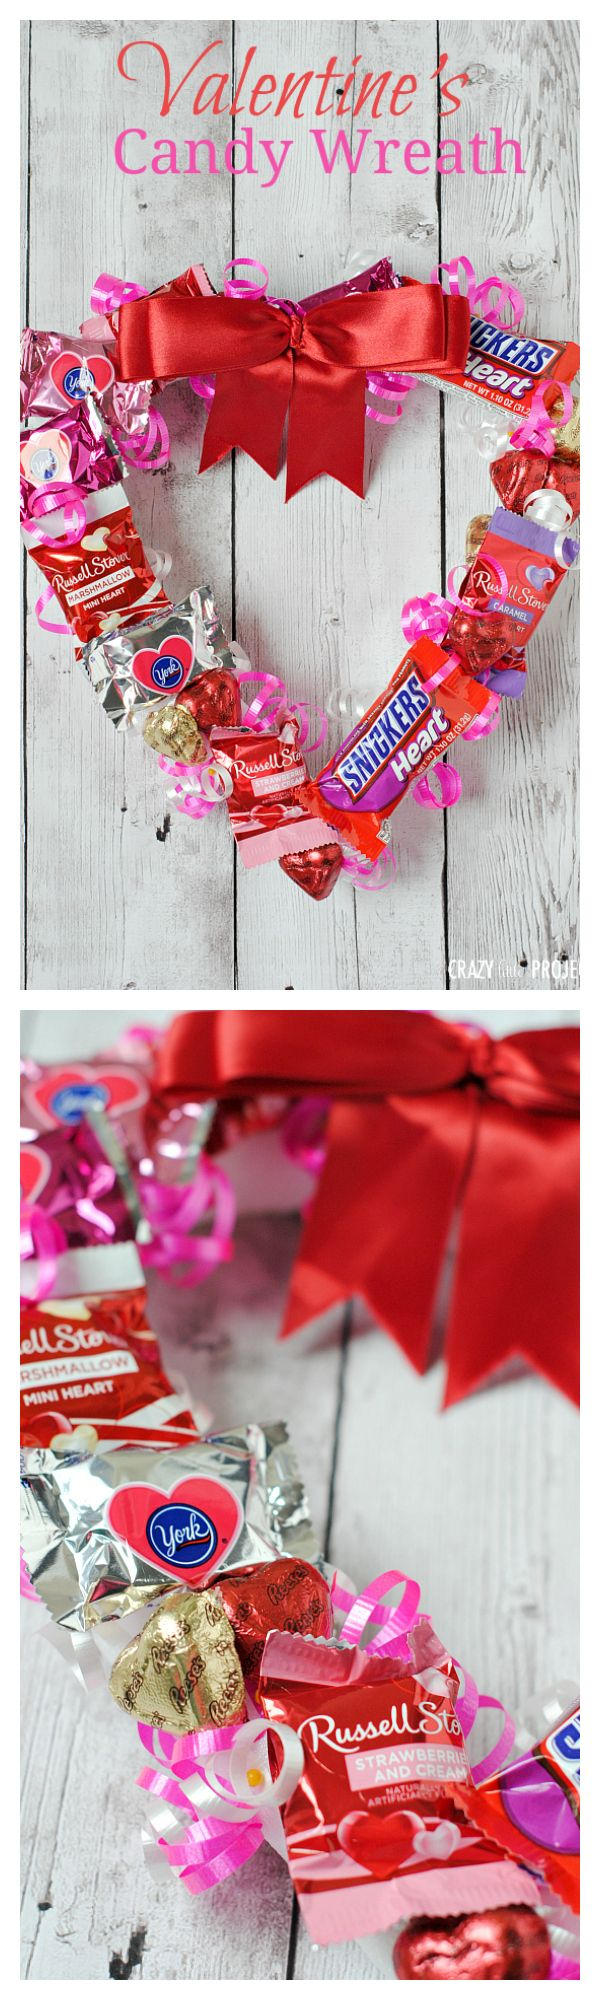 Cute Gift Idea for Valentineu0027s Candy Wreath